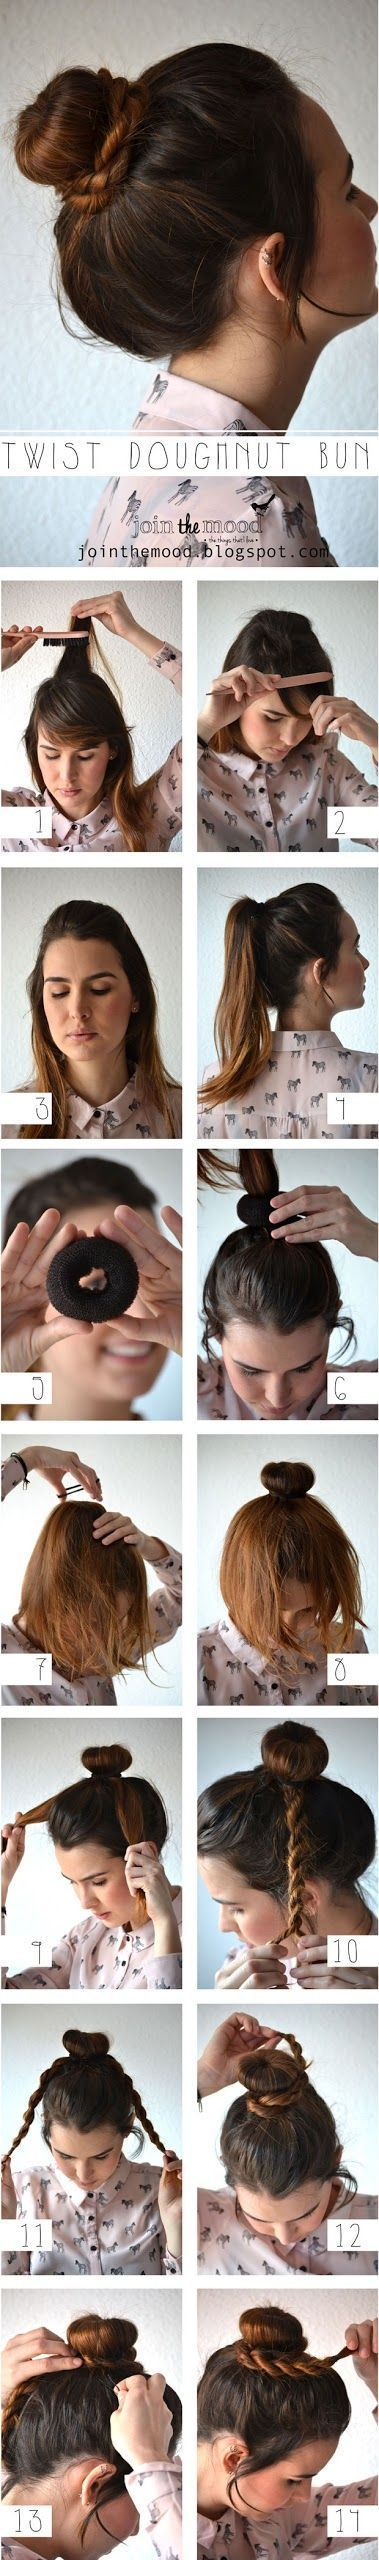 10 Hair Tutorials for You to Shine Everyday | Pretty Designs